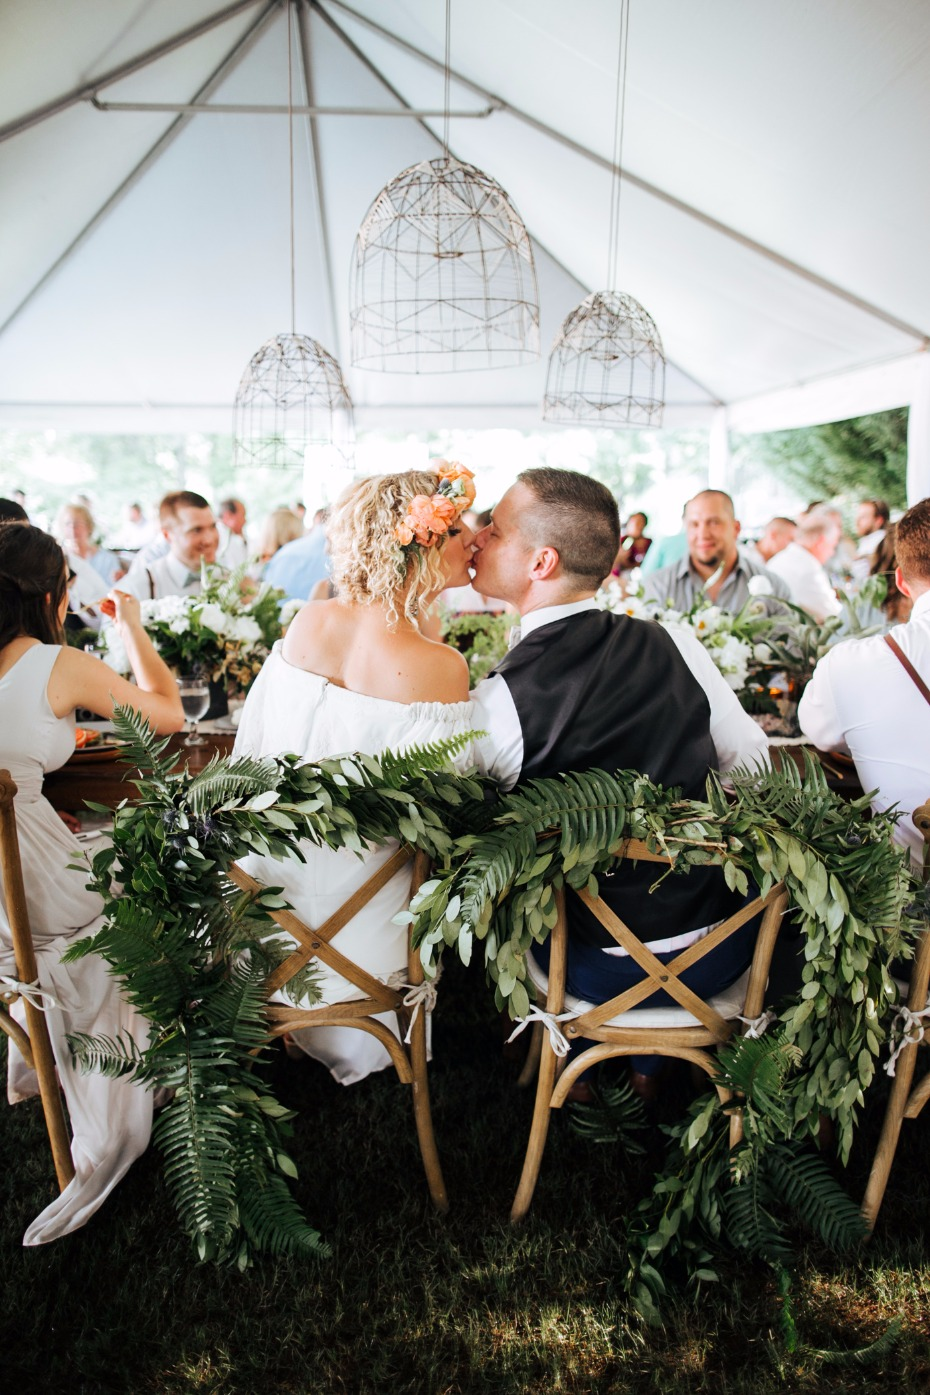 Love this plant filled wedding